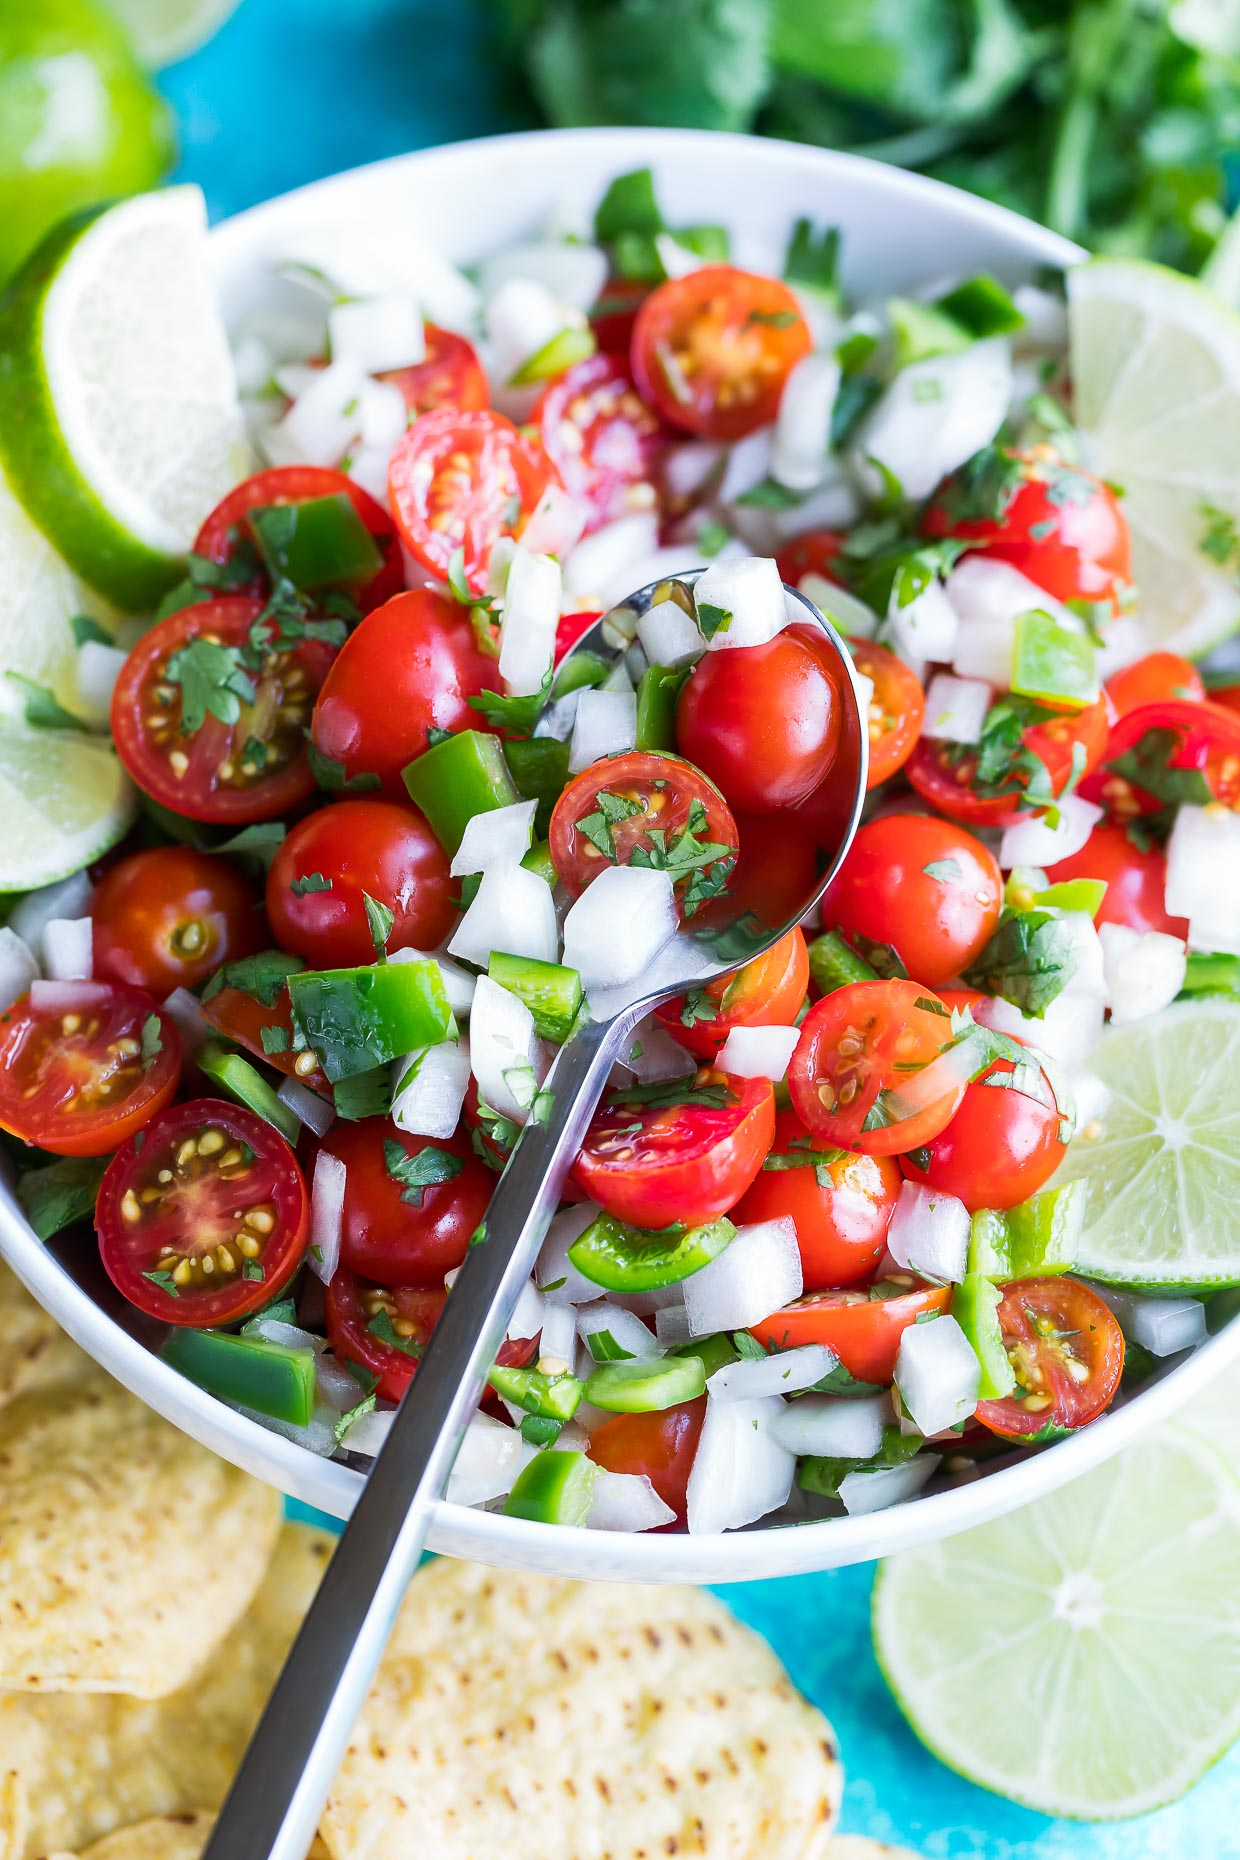 Cherry Tomato Pico de Gallo Recipe